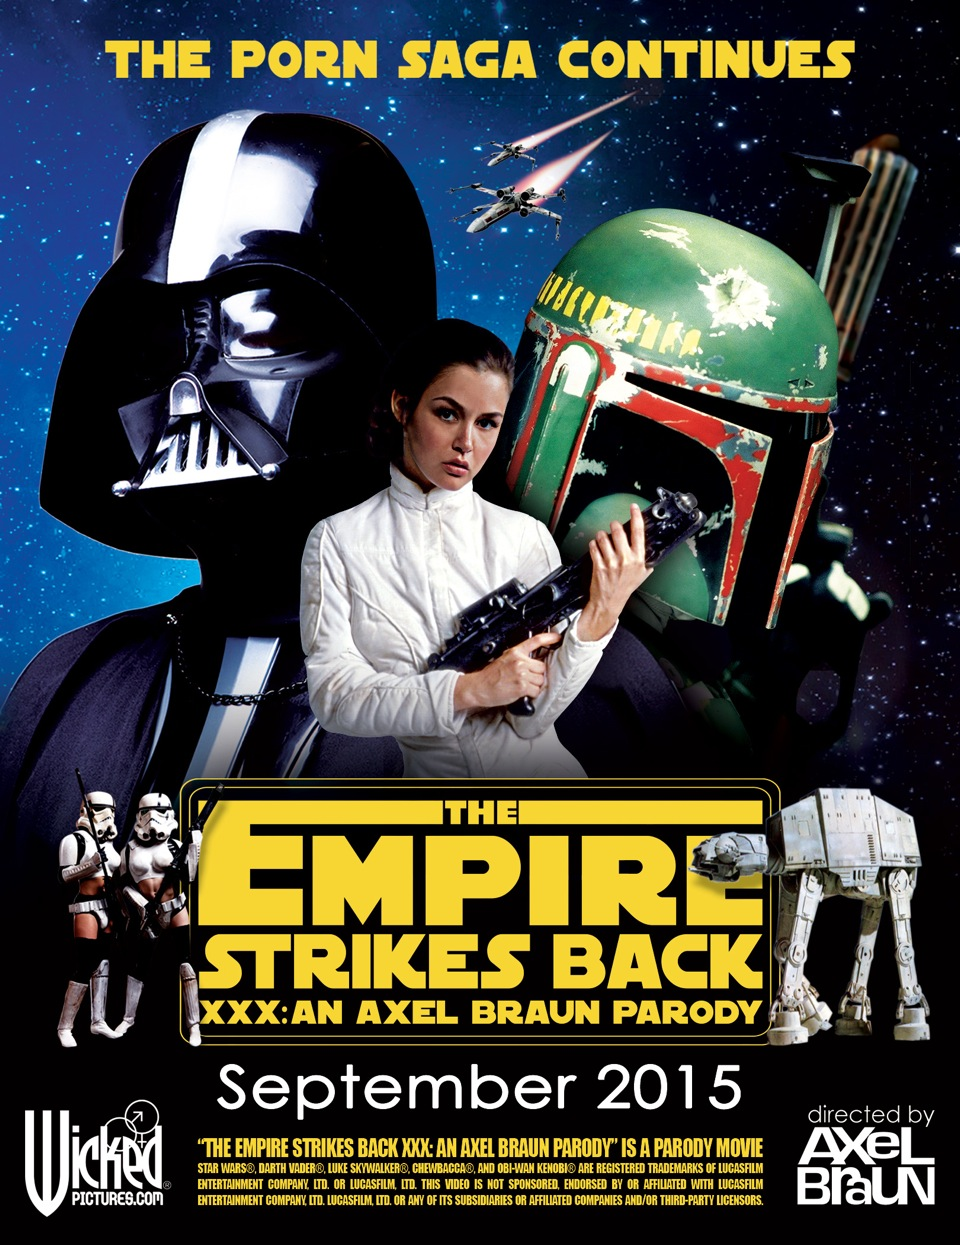 Empire Strikes Back XXX Poster